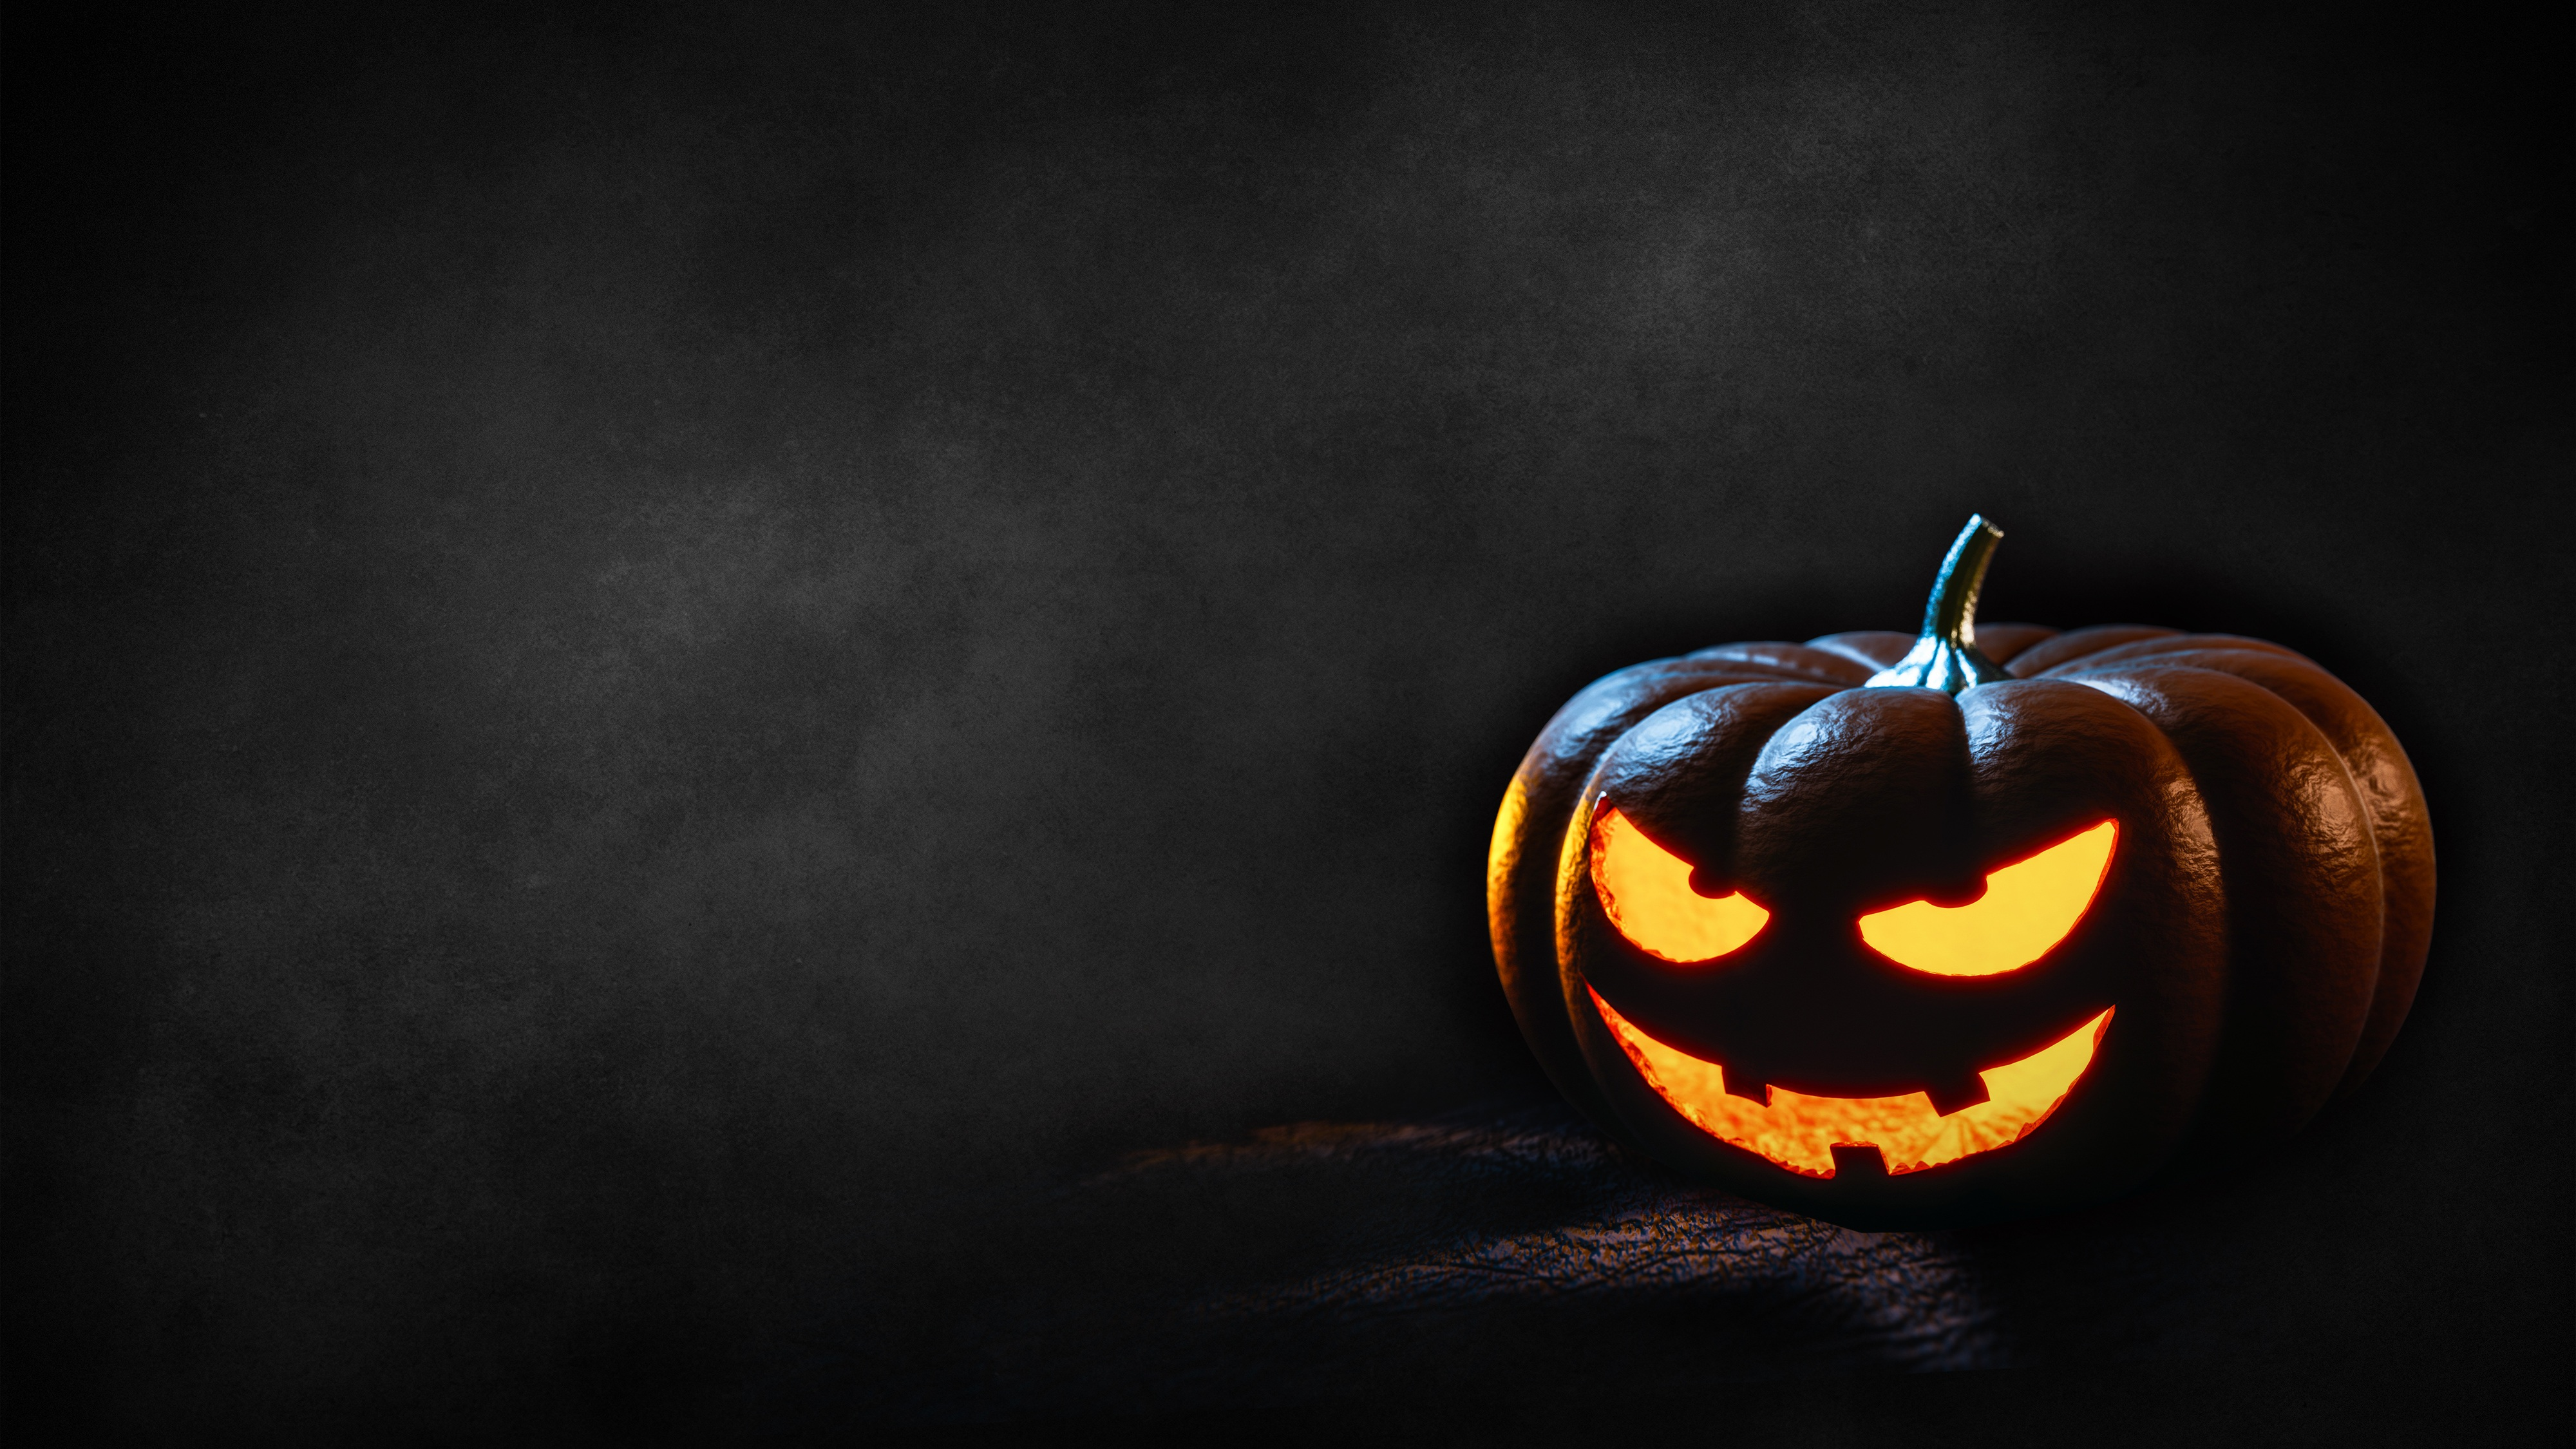 97705 download wallpaper Holidays, Halloween, Pumpkin, Shine, Light screensavers and pictures for free